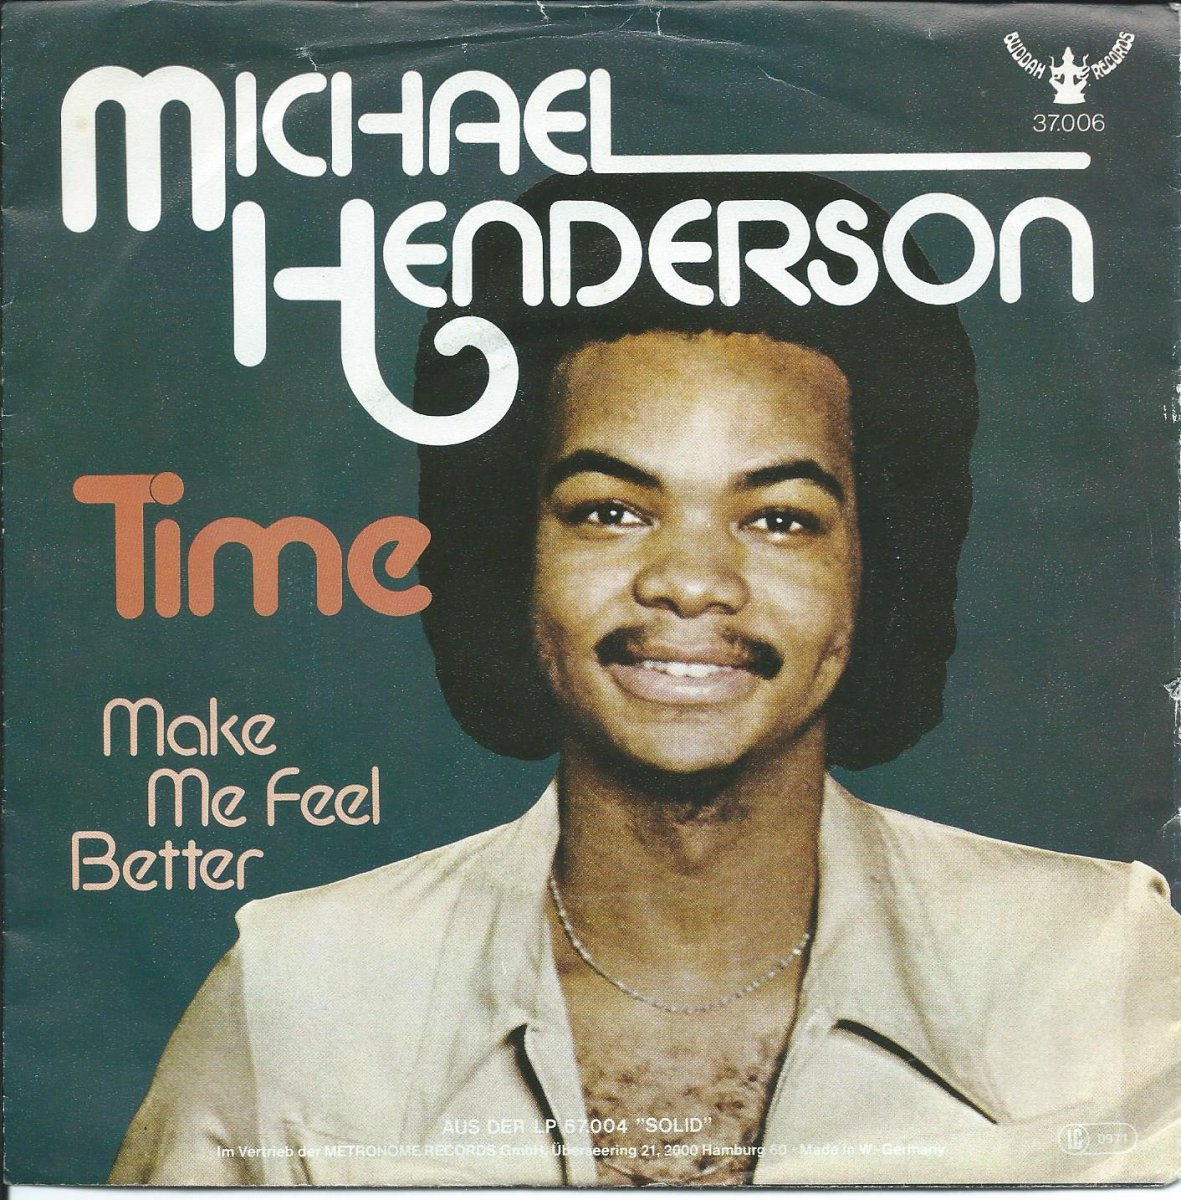 MICHAEL HENDERSON / TIME / MAKE ME FEEL BETTER (7